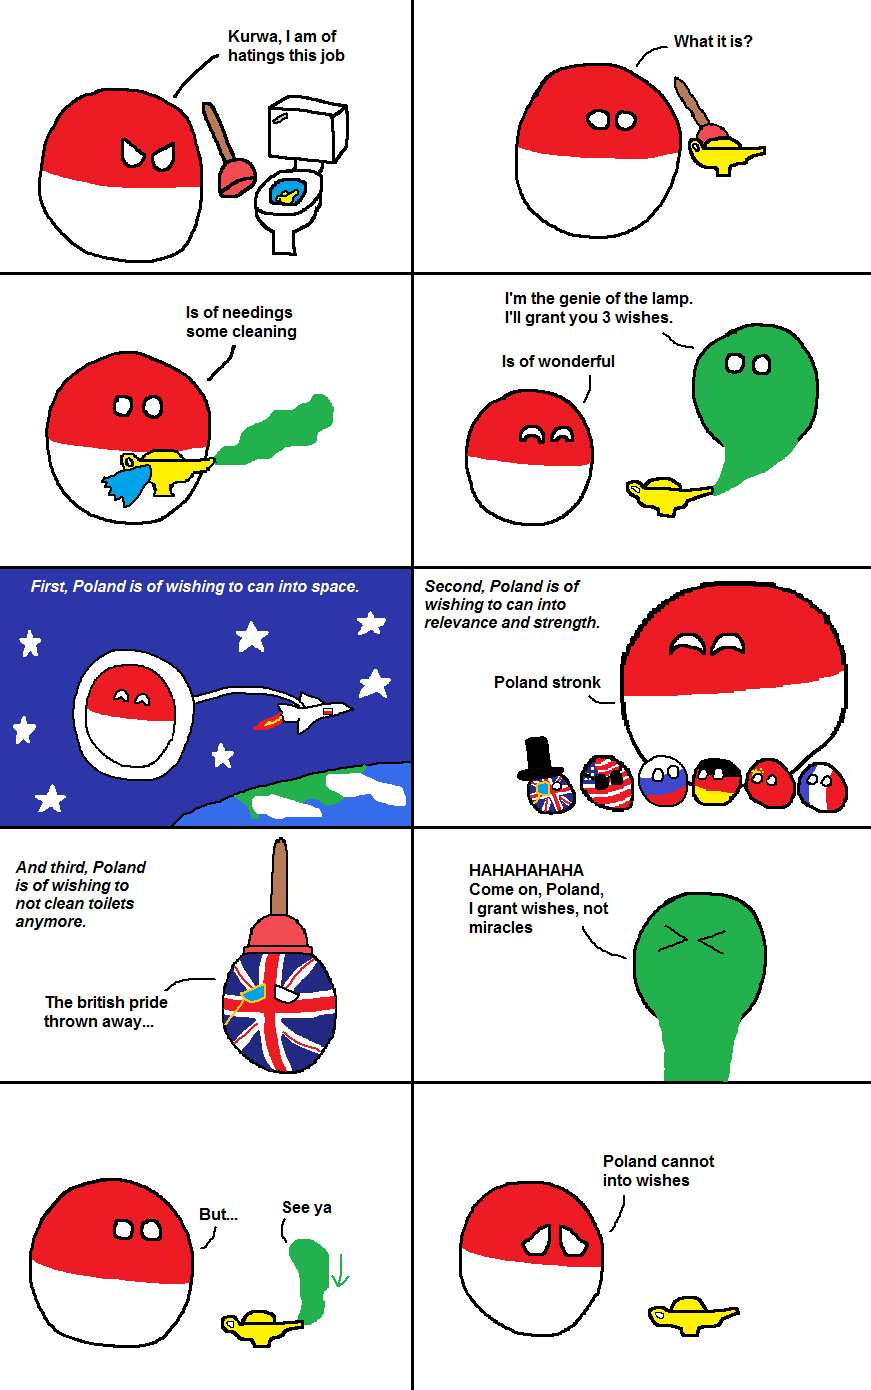 Poland Cannot Into Wishes